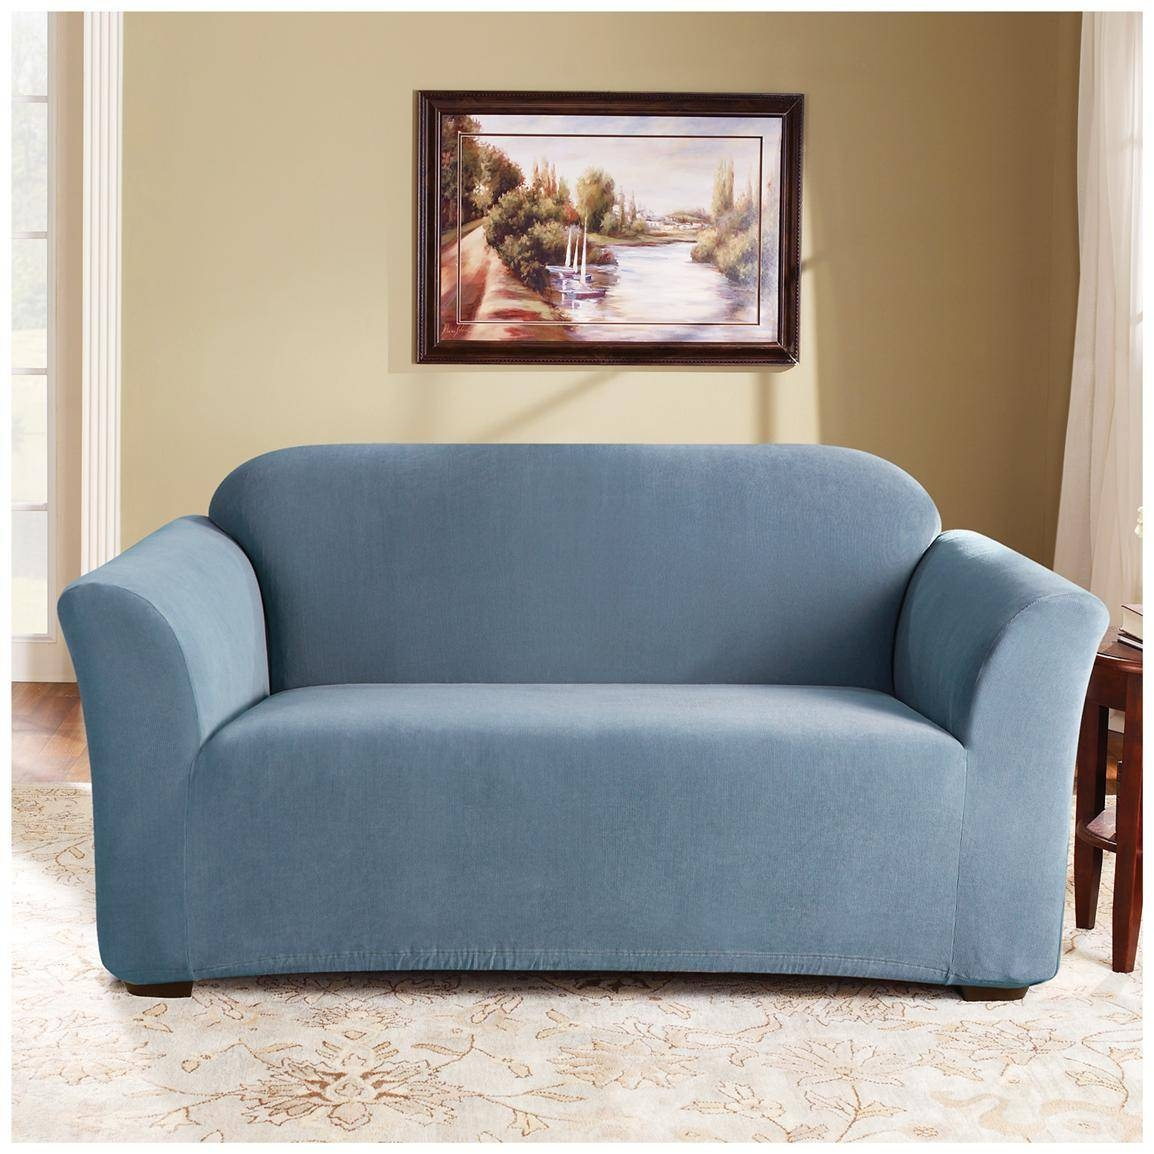 Sure Fit® Stretch Pearson Sofa Slipcover - 292823, Furniture within Stretch Slipcover Sofas (Image 15 of 15)